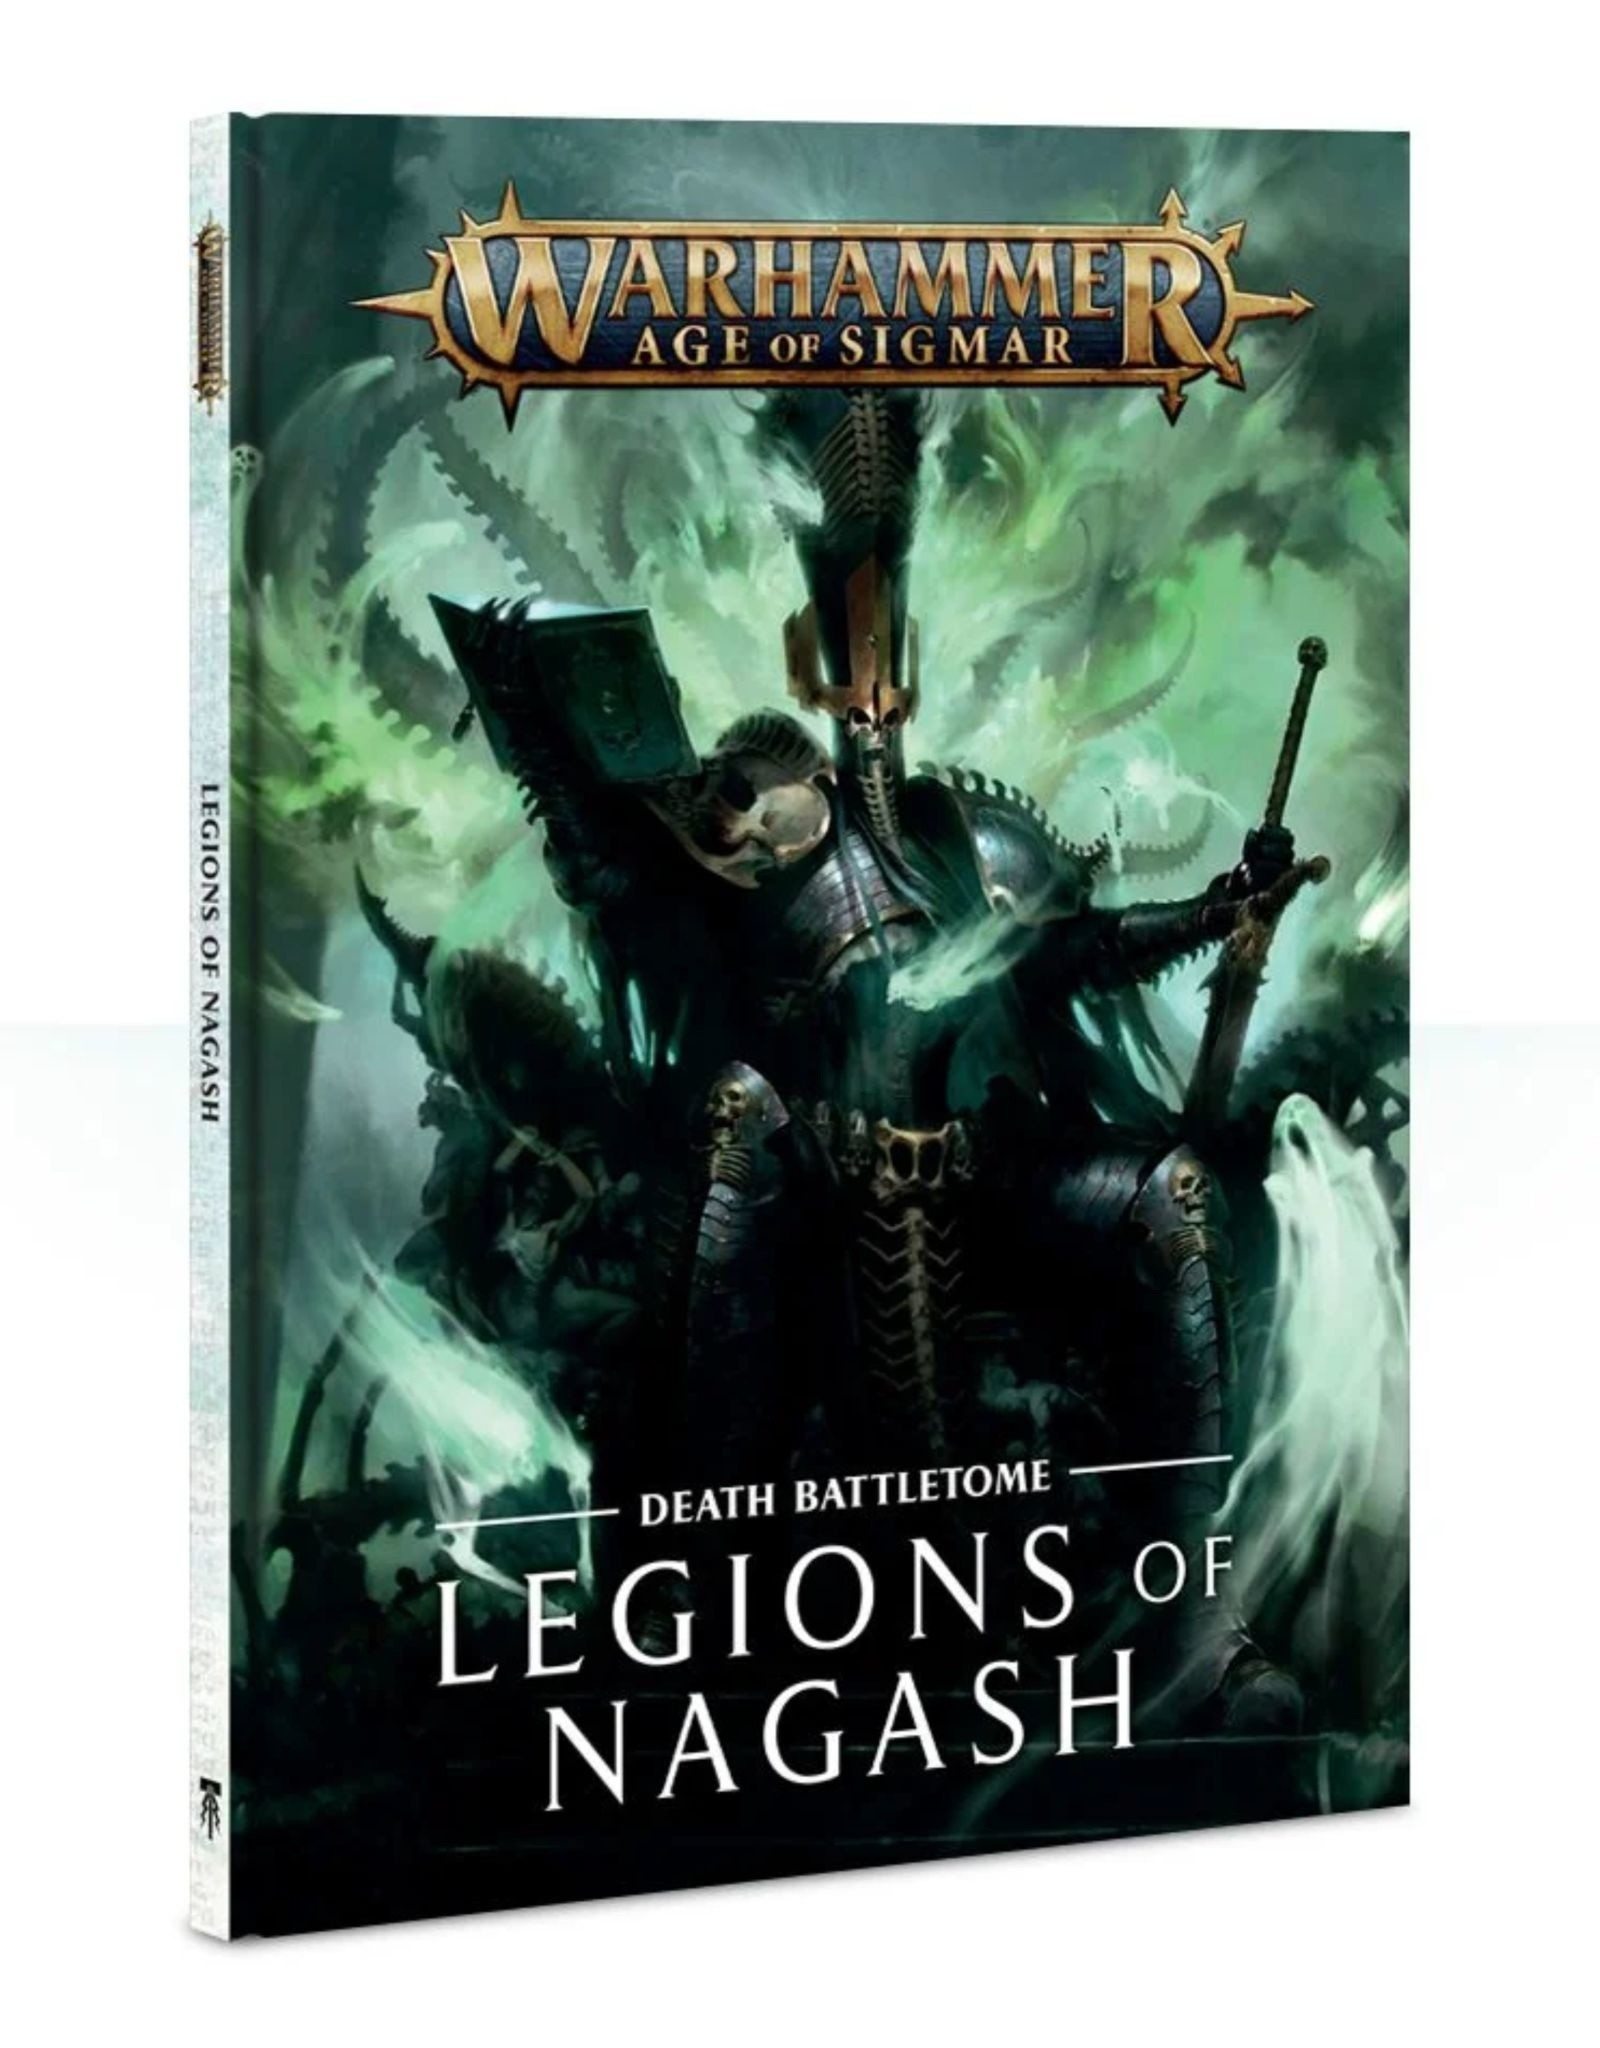 Age of Sigmar Battletome: Legions of Nagash